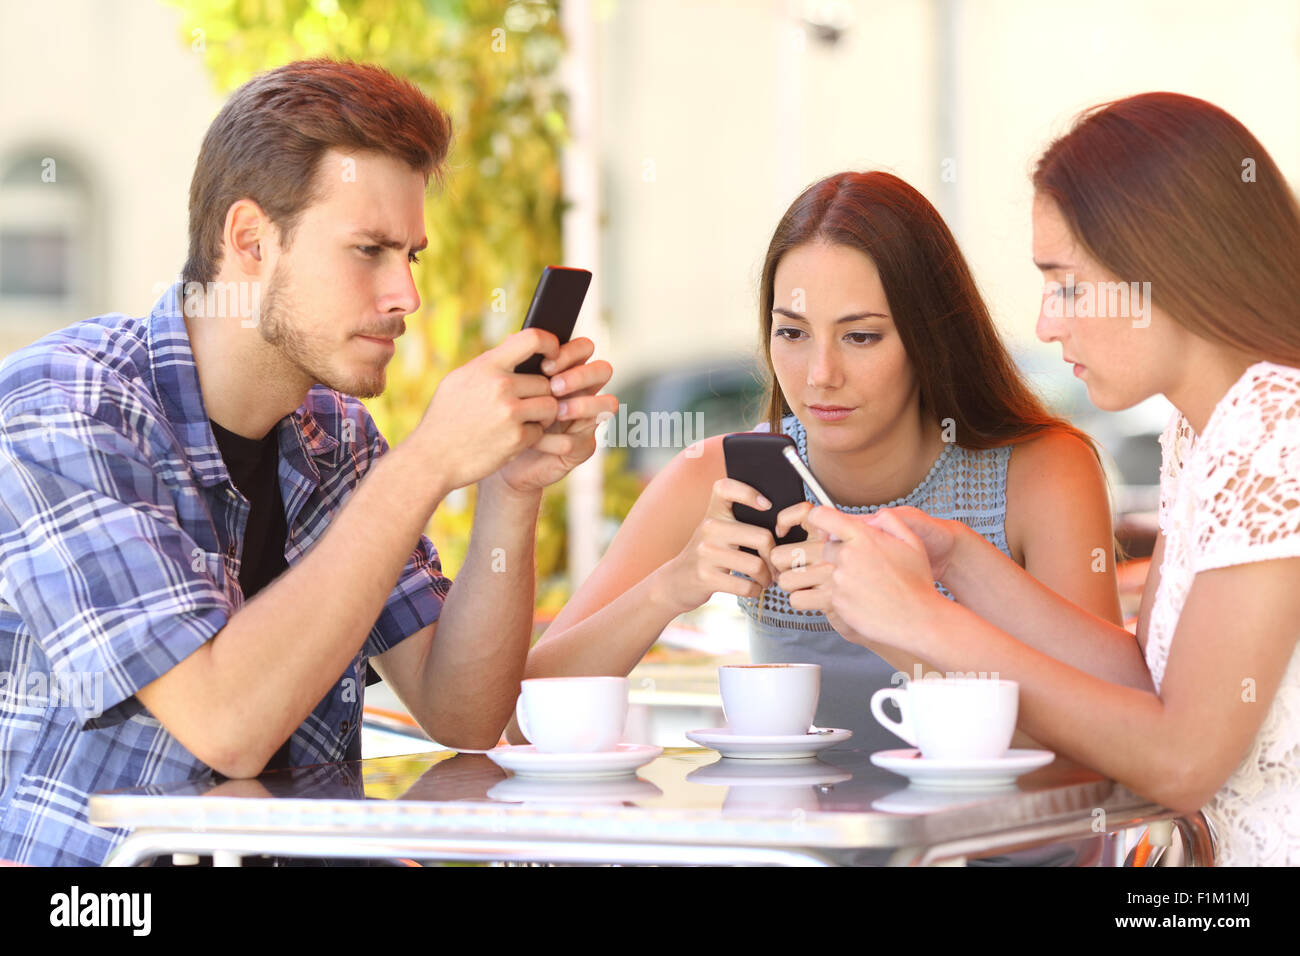 Group of three smart phone addicted friends in a coffee shop terrace everyone with one cellphone - Stock Image